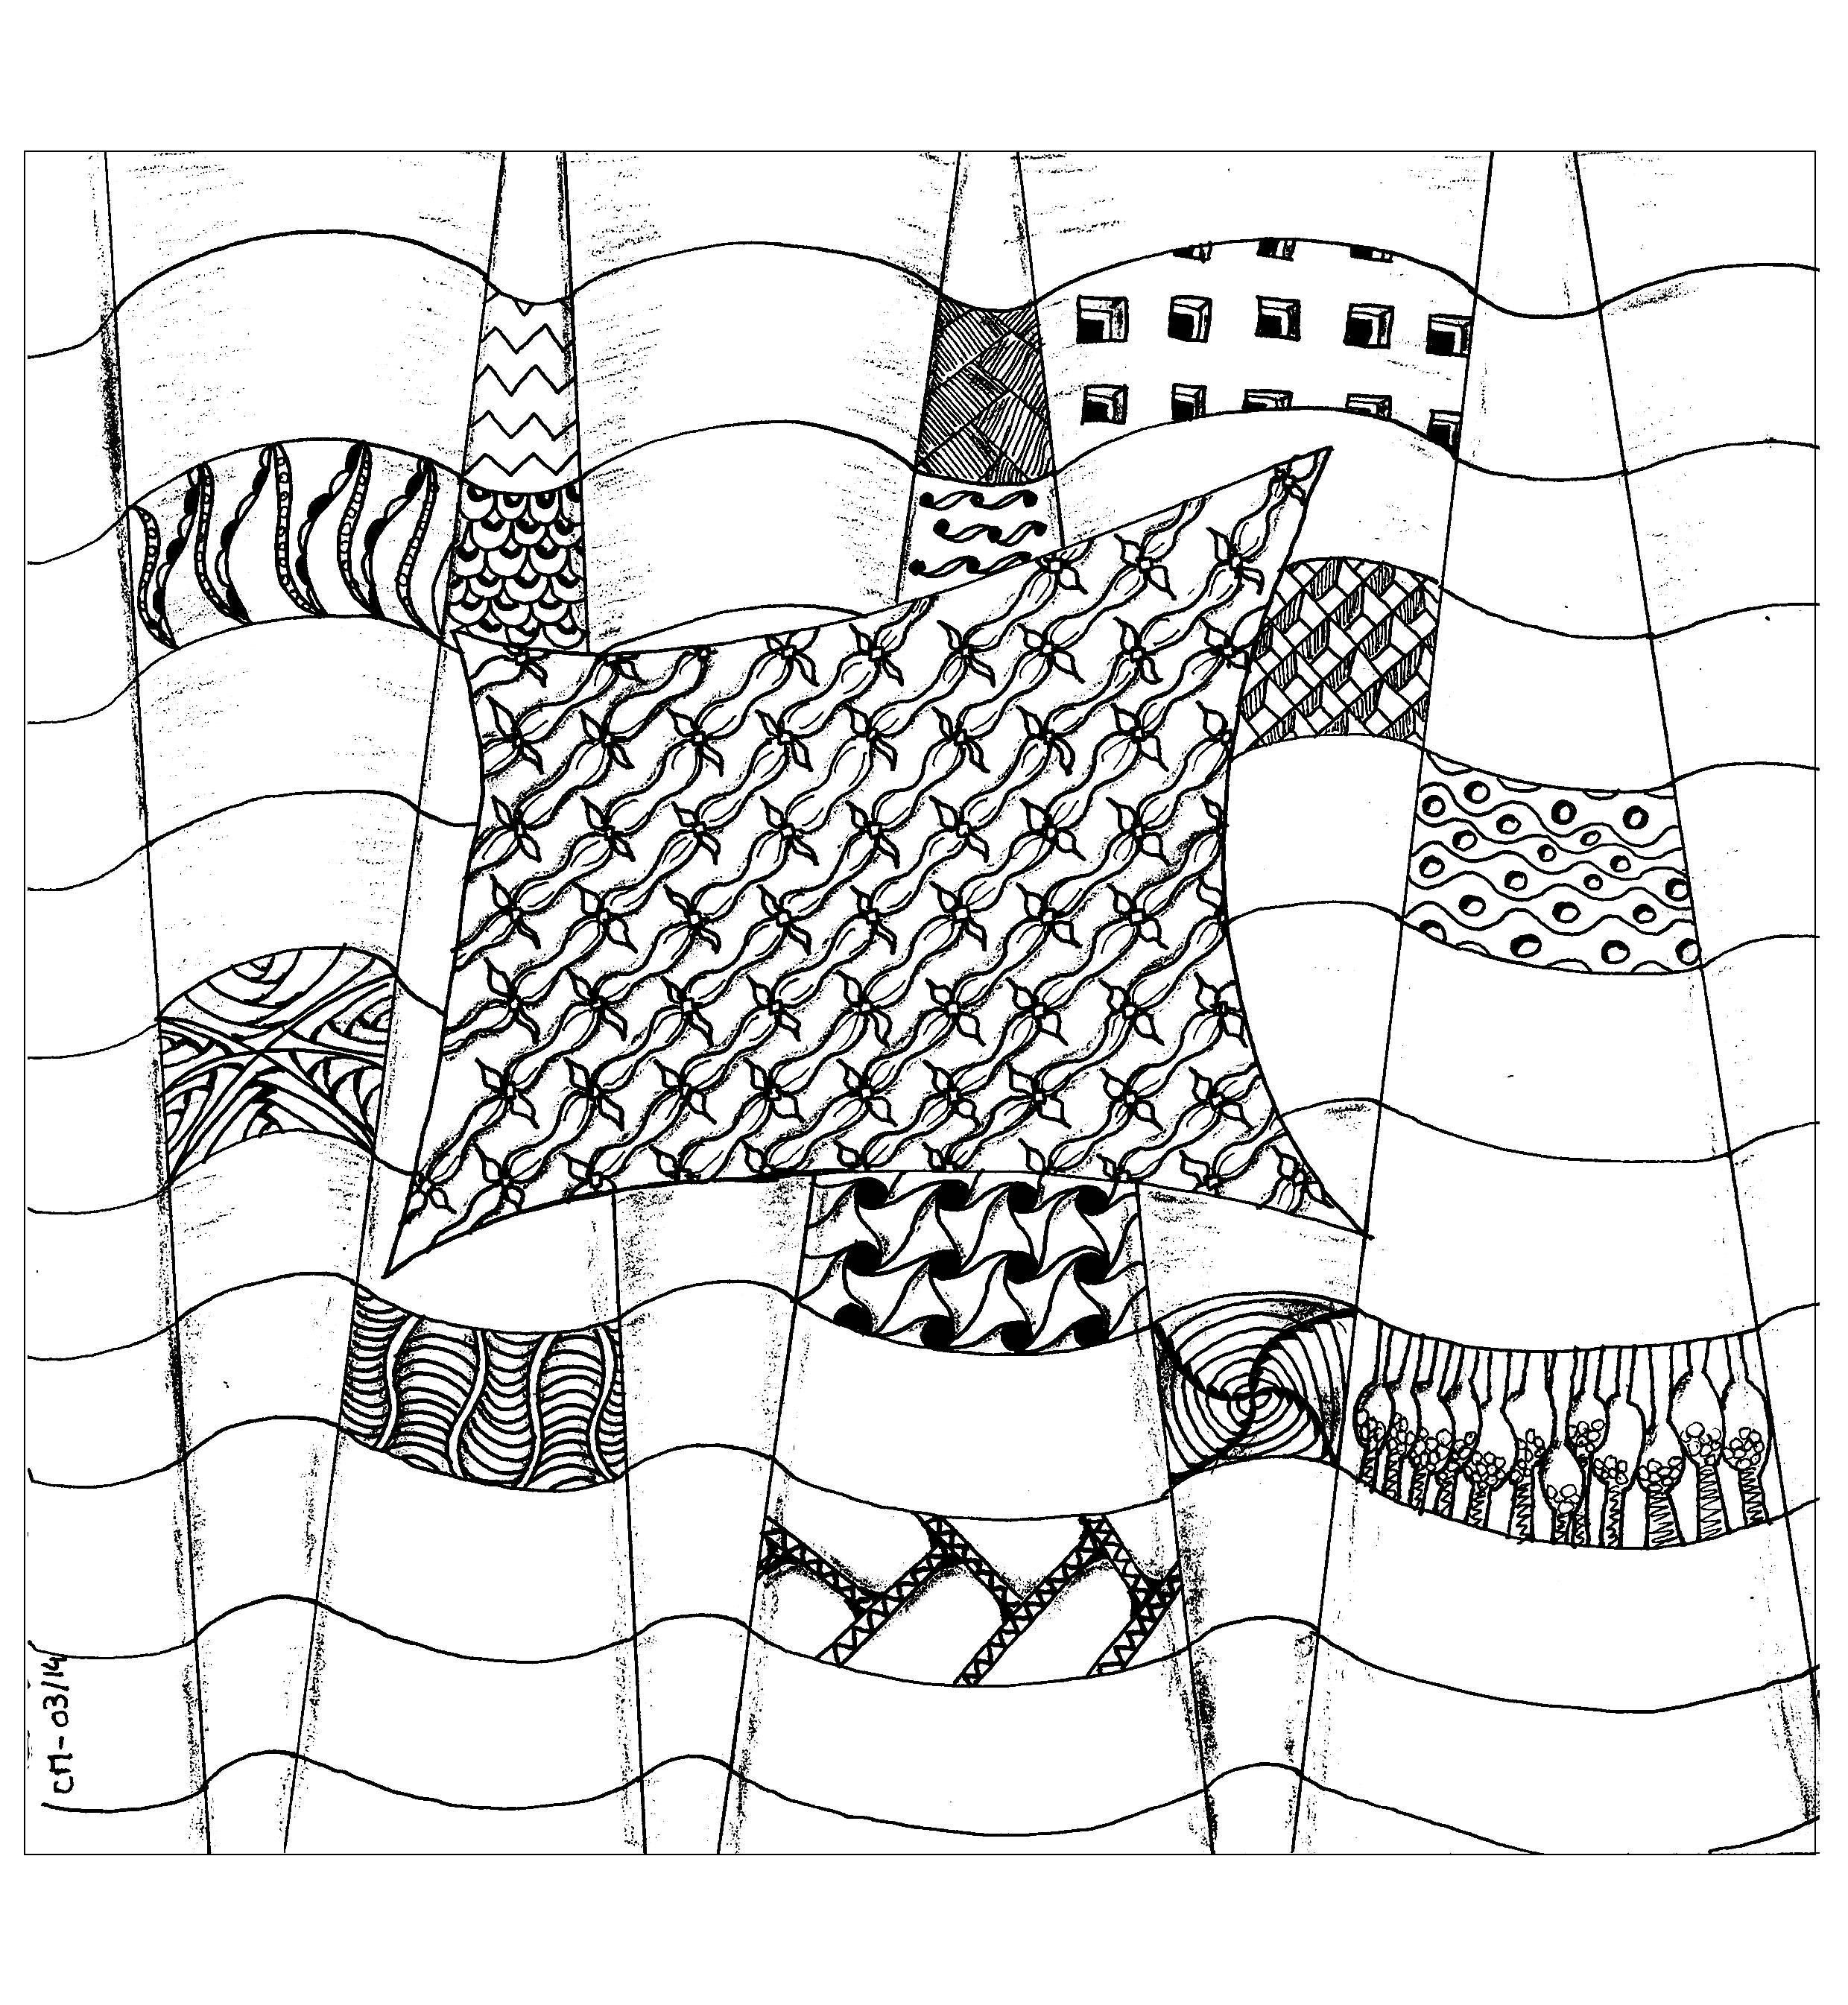 'Abstraction', exclusive coloring page See the original work